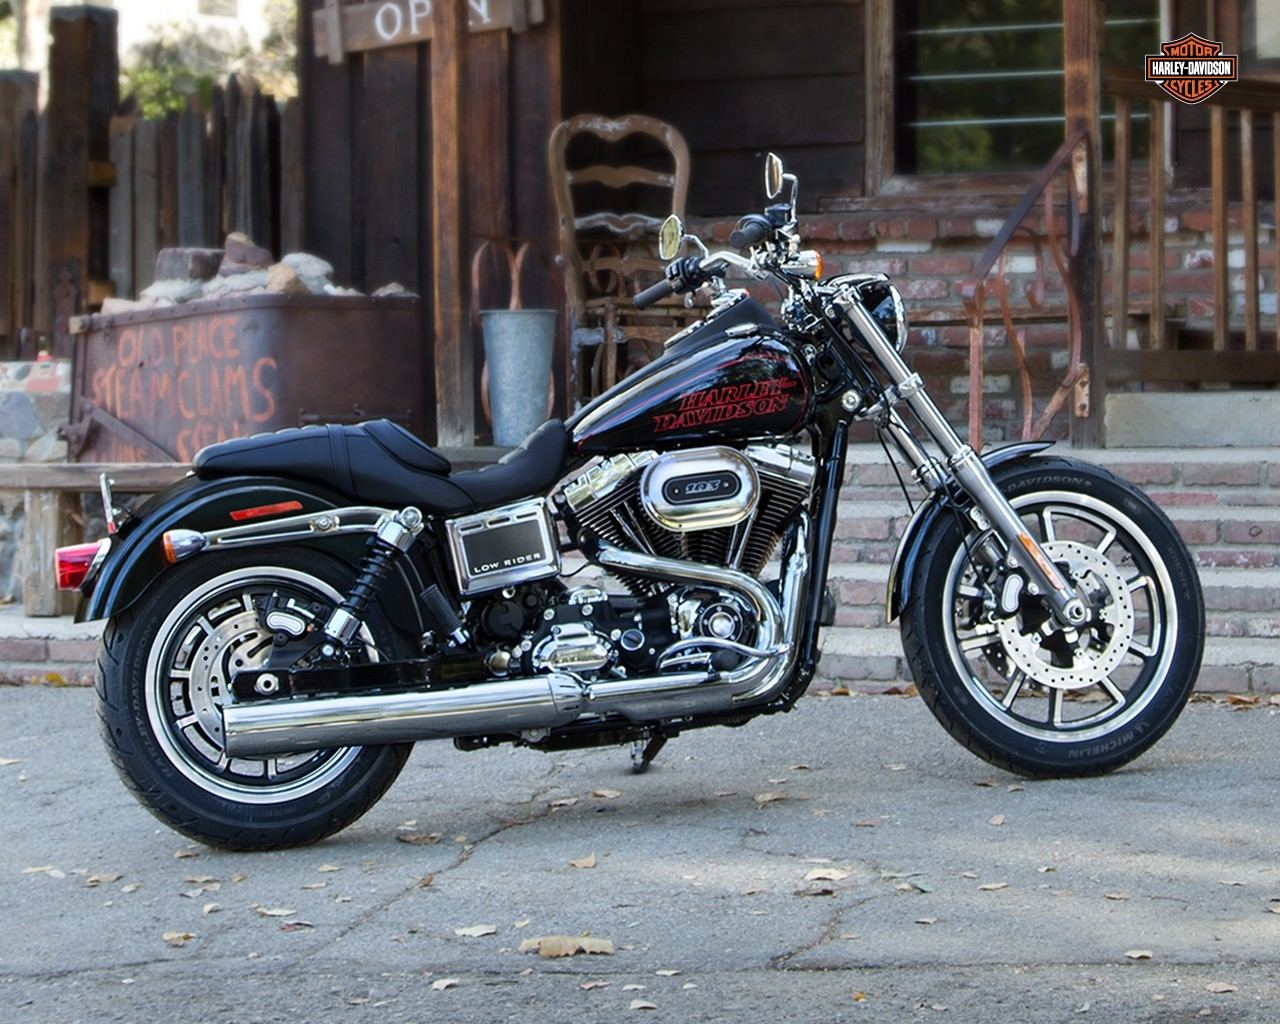 Harley Davidson Dyna Low Rider Recalled For Faulty Ignition Switch 2008 Fxdl Wiring Diagram